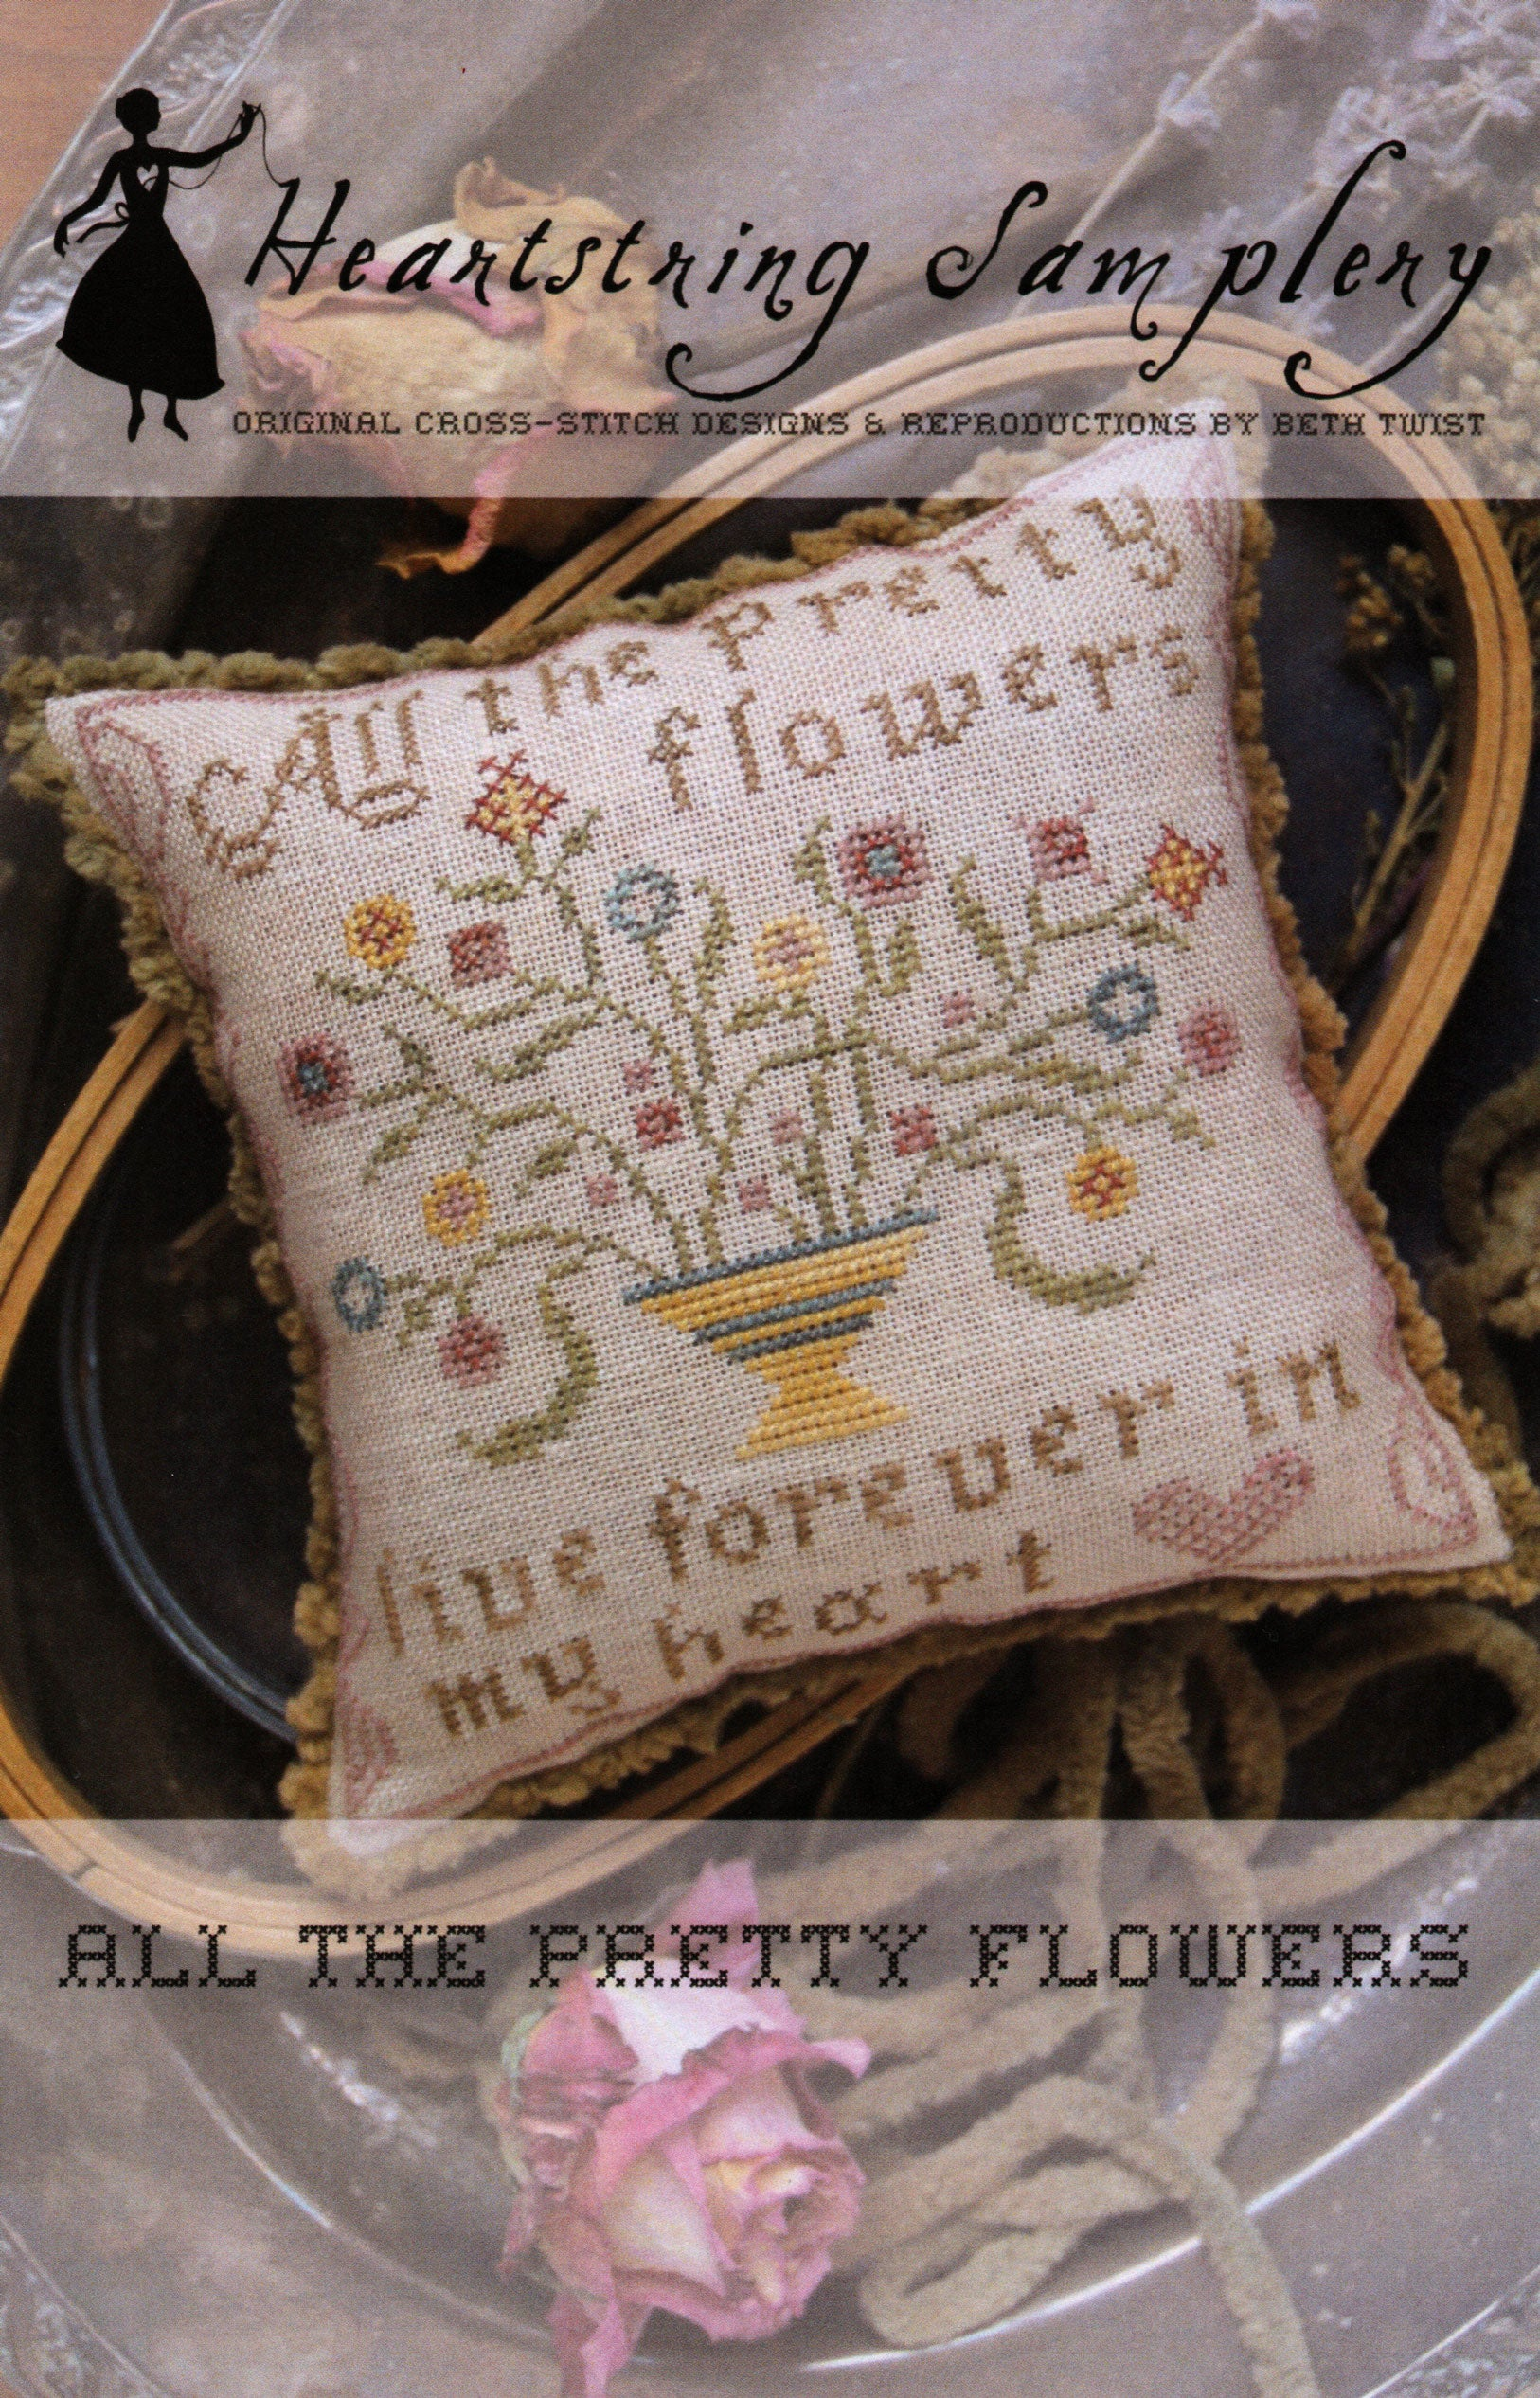 All The Pretty Flowers October House Fiber Arts